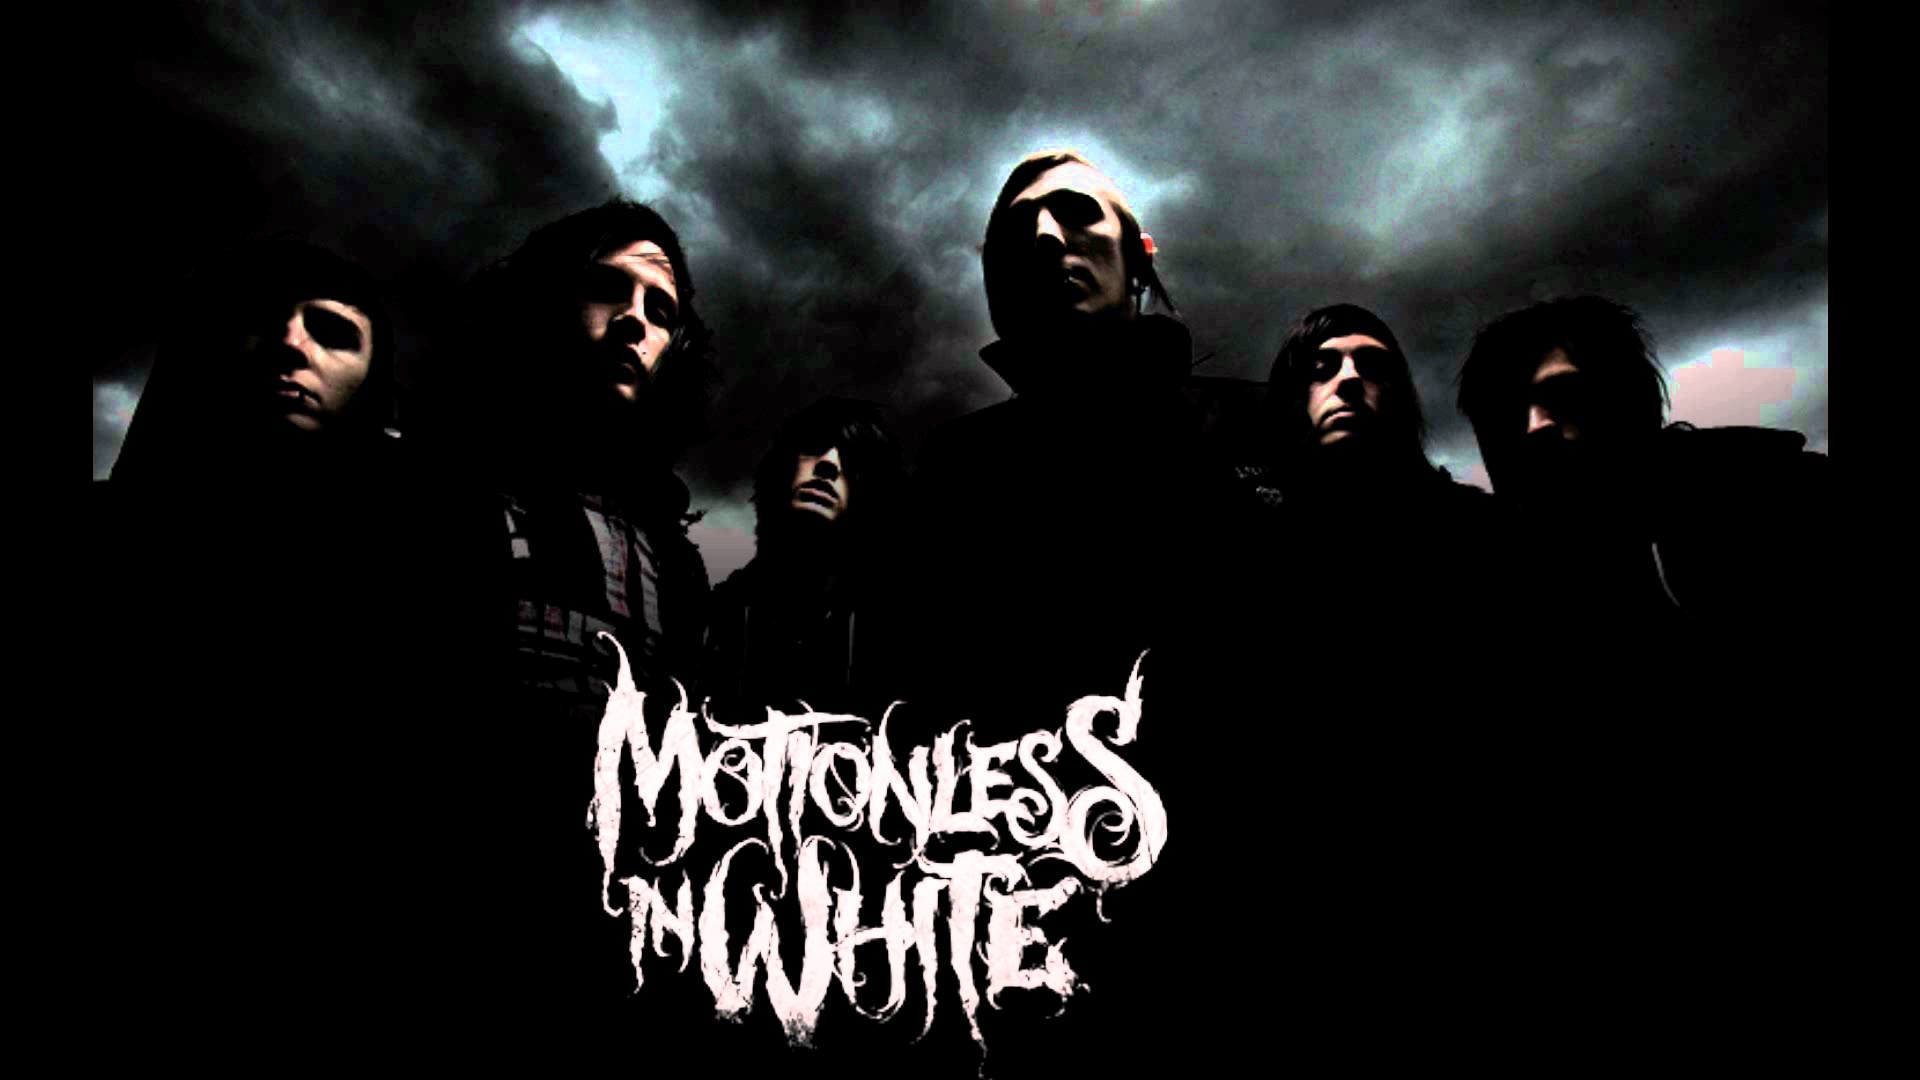 Motionless in white wallpaper hd 66 images - Motionless in white wallpaper ...